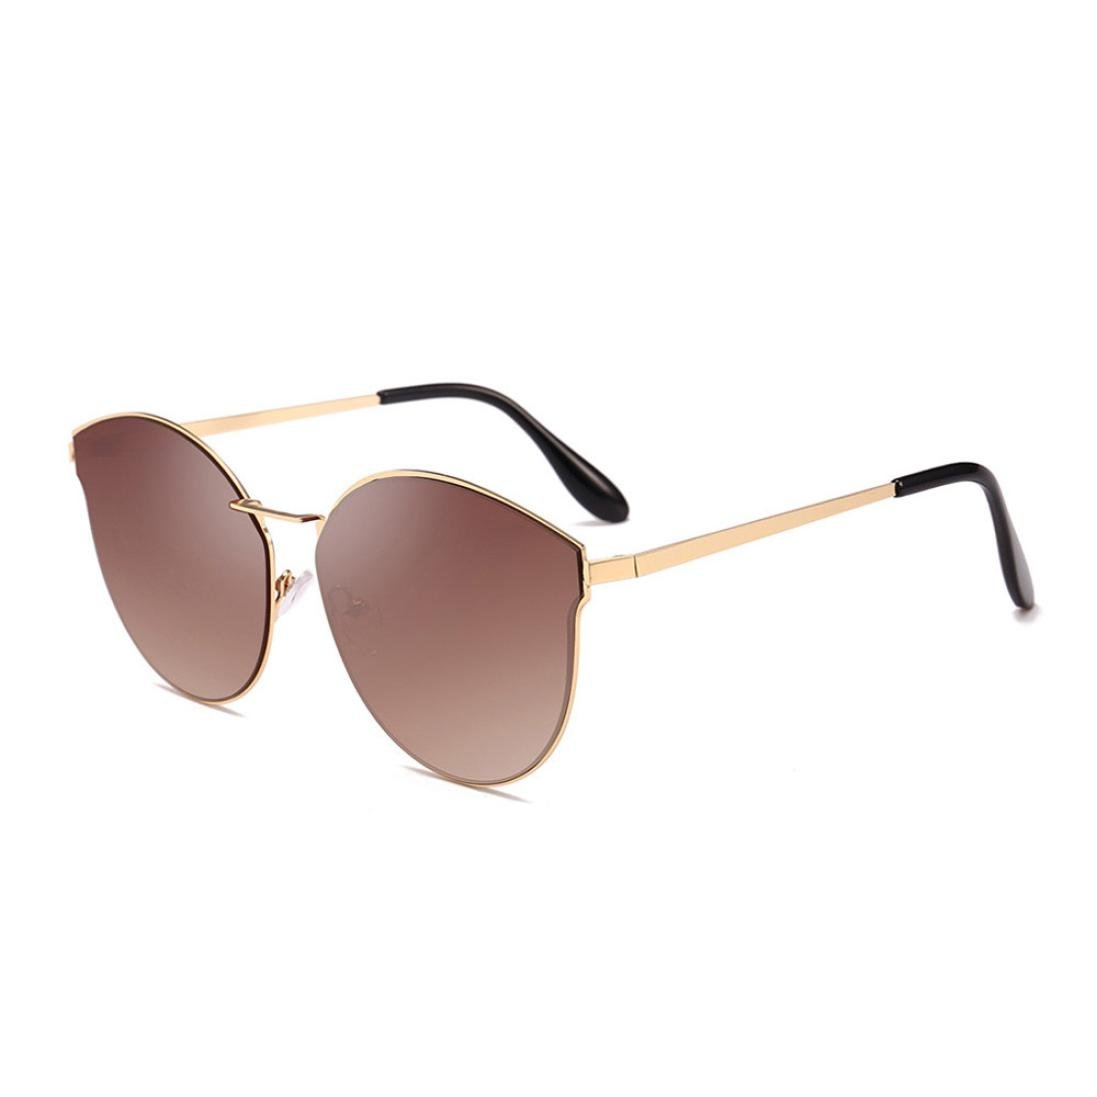 Hot Sale! Womens Mens Spring Summer Sunglasses, Retro Shades Integrated UV Polarized Glasses Fashion Eyewear for Outdoor Travelling Driving Cycling Running Fishing Golf (C)